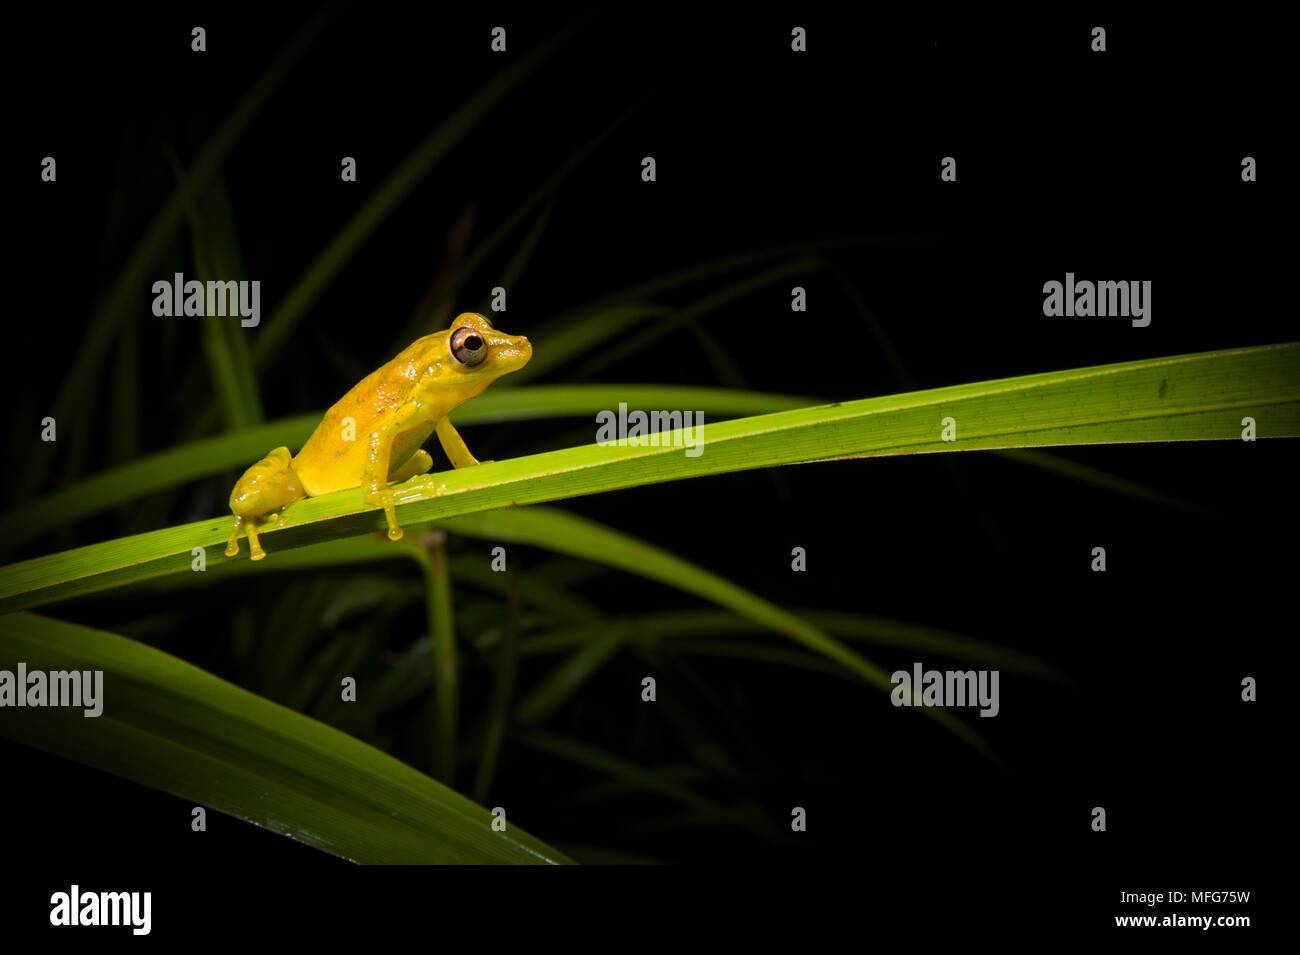 An olive-snouted treefrog  Scinax elaeochroa  in Tortuguero National Park  Costa Rica - Stock Image